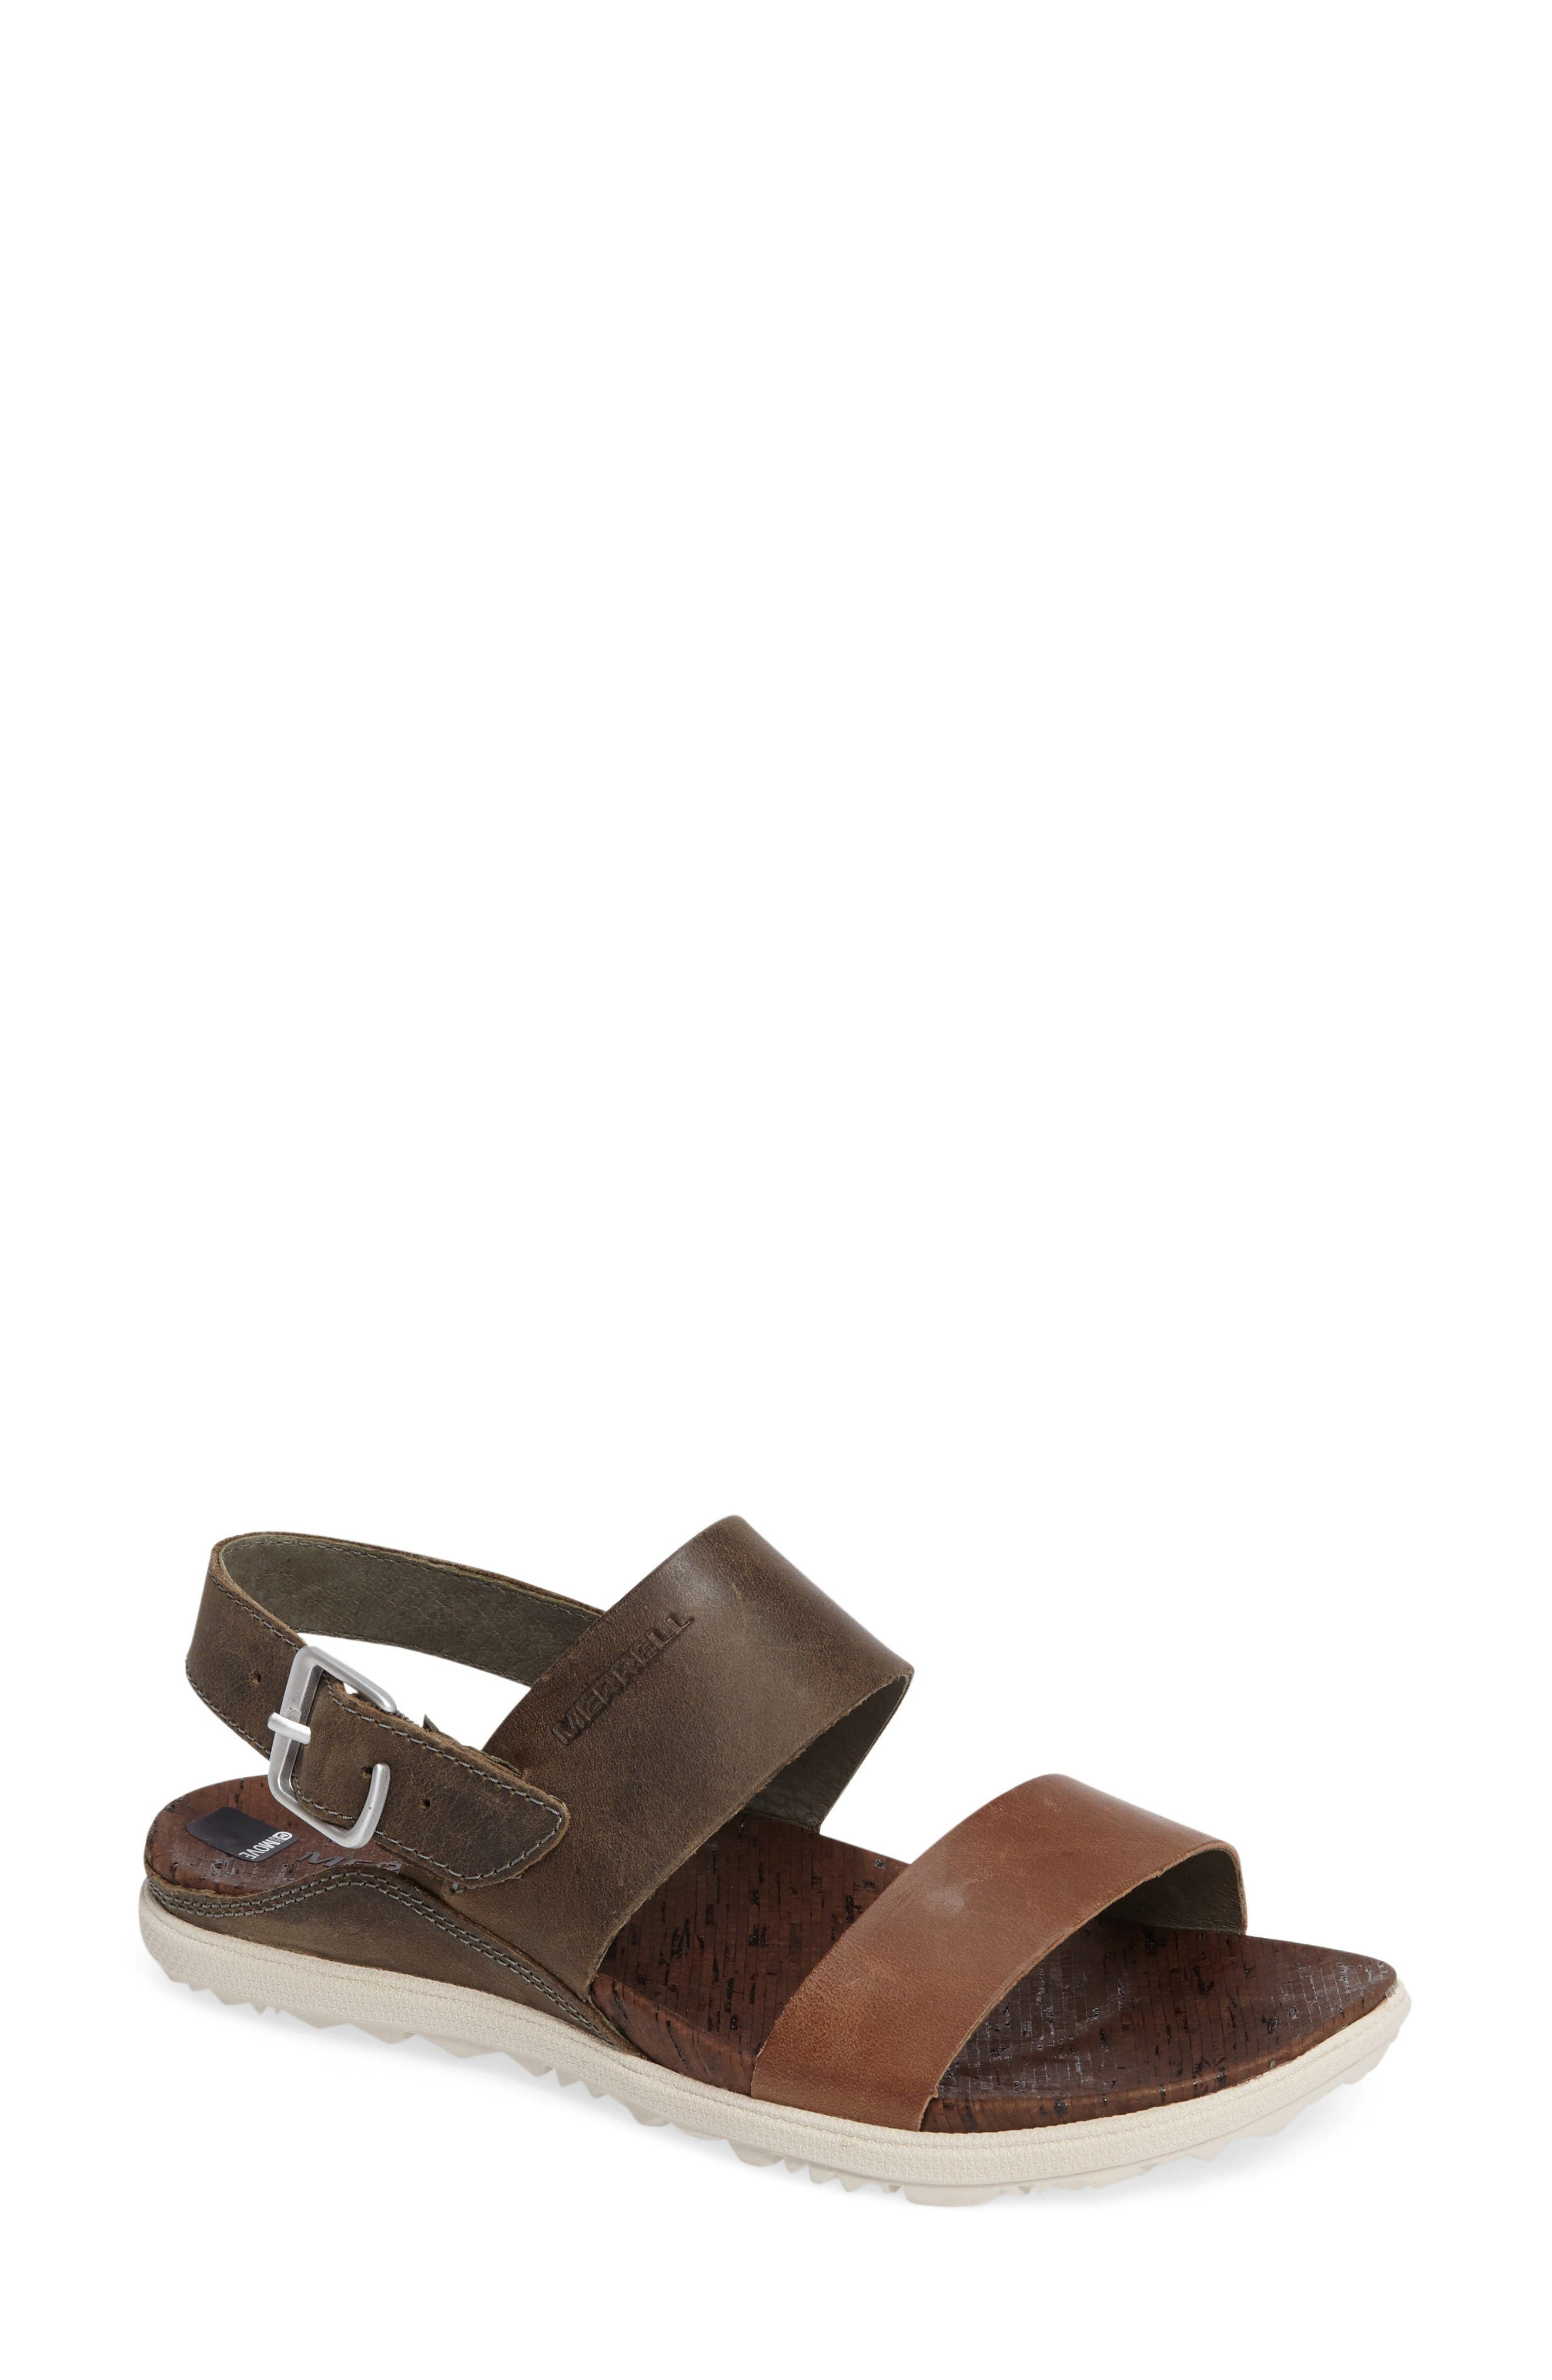 'Around Town' Slingback Sandal,                             Main thumbnail 1, color,                             Vertiver Leather